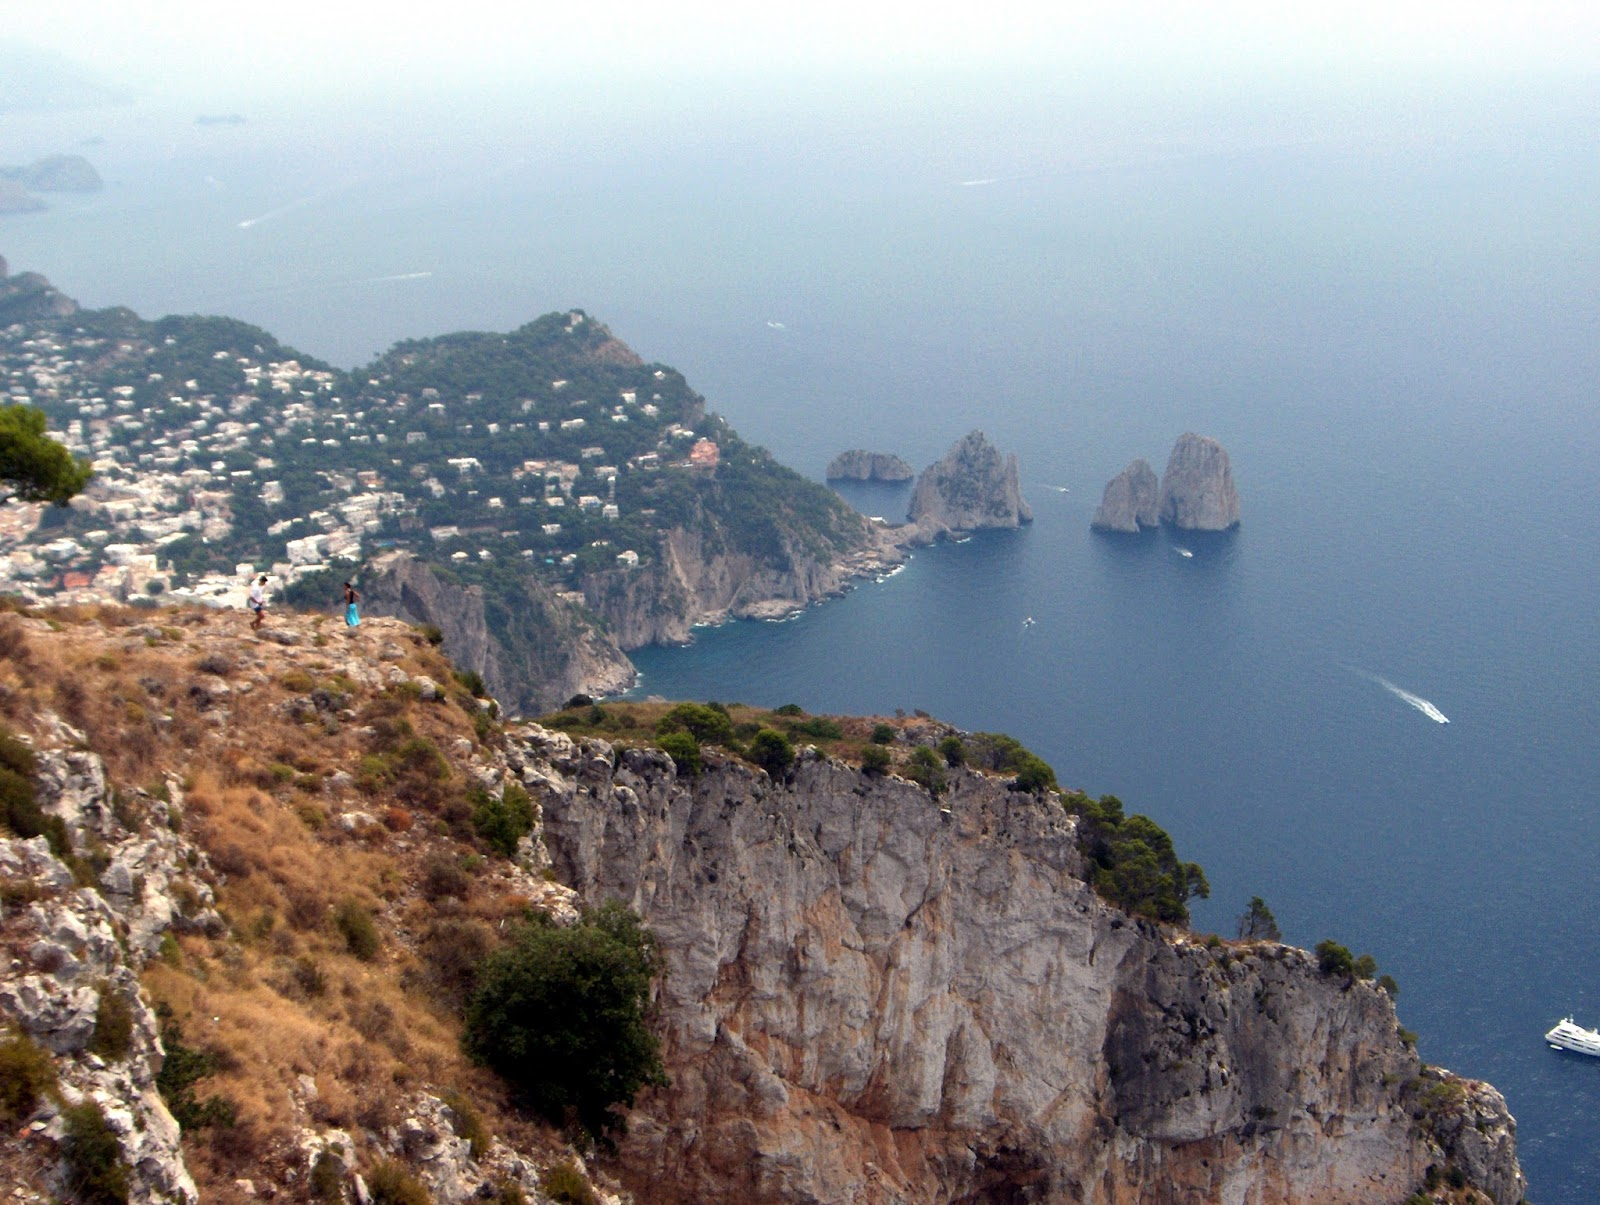 Capri, italy, caprese, getting to capri from Sorrento, from Naples, travel, sea stacks, view,